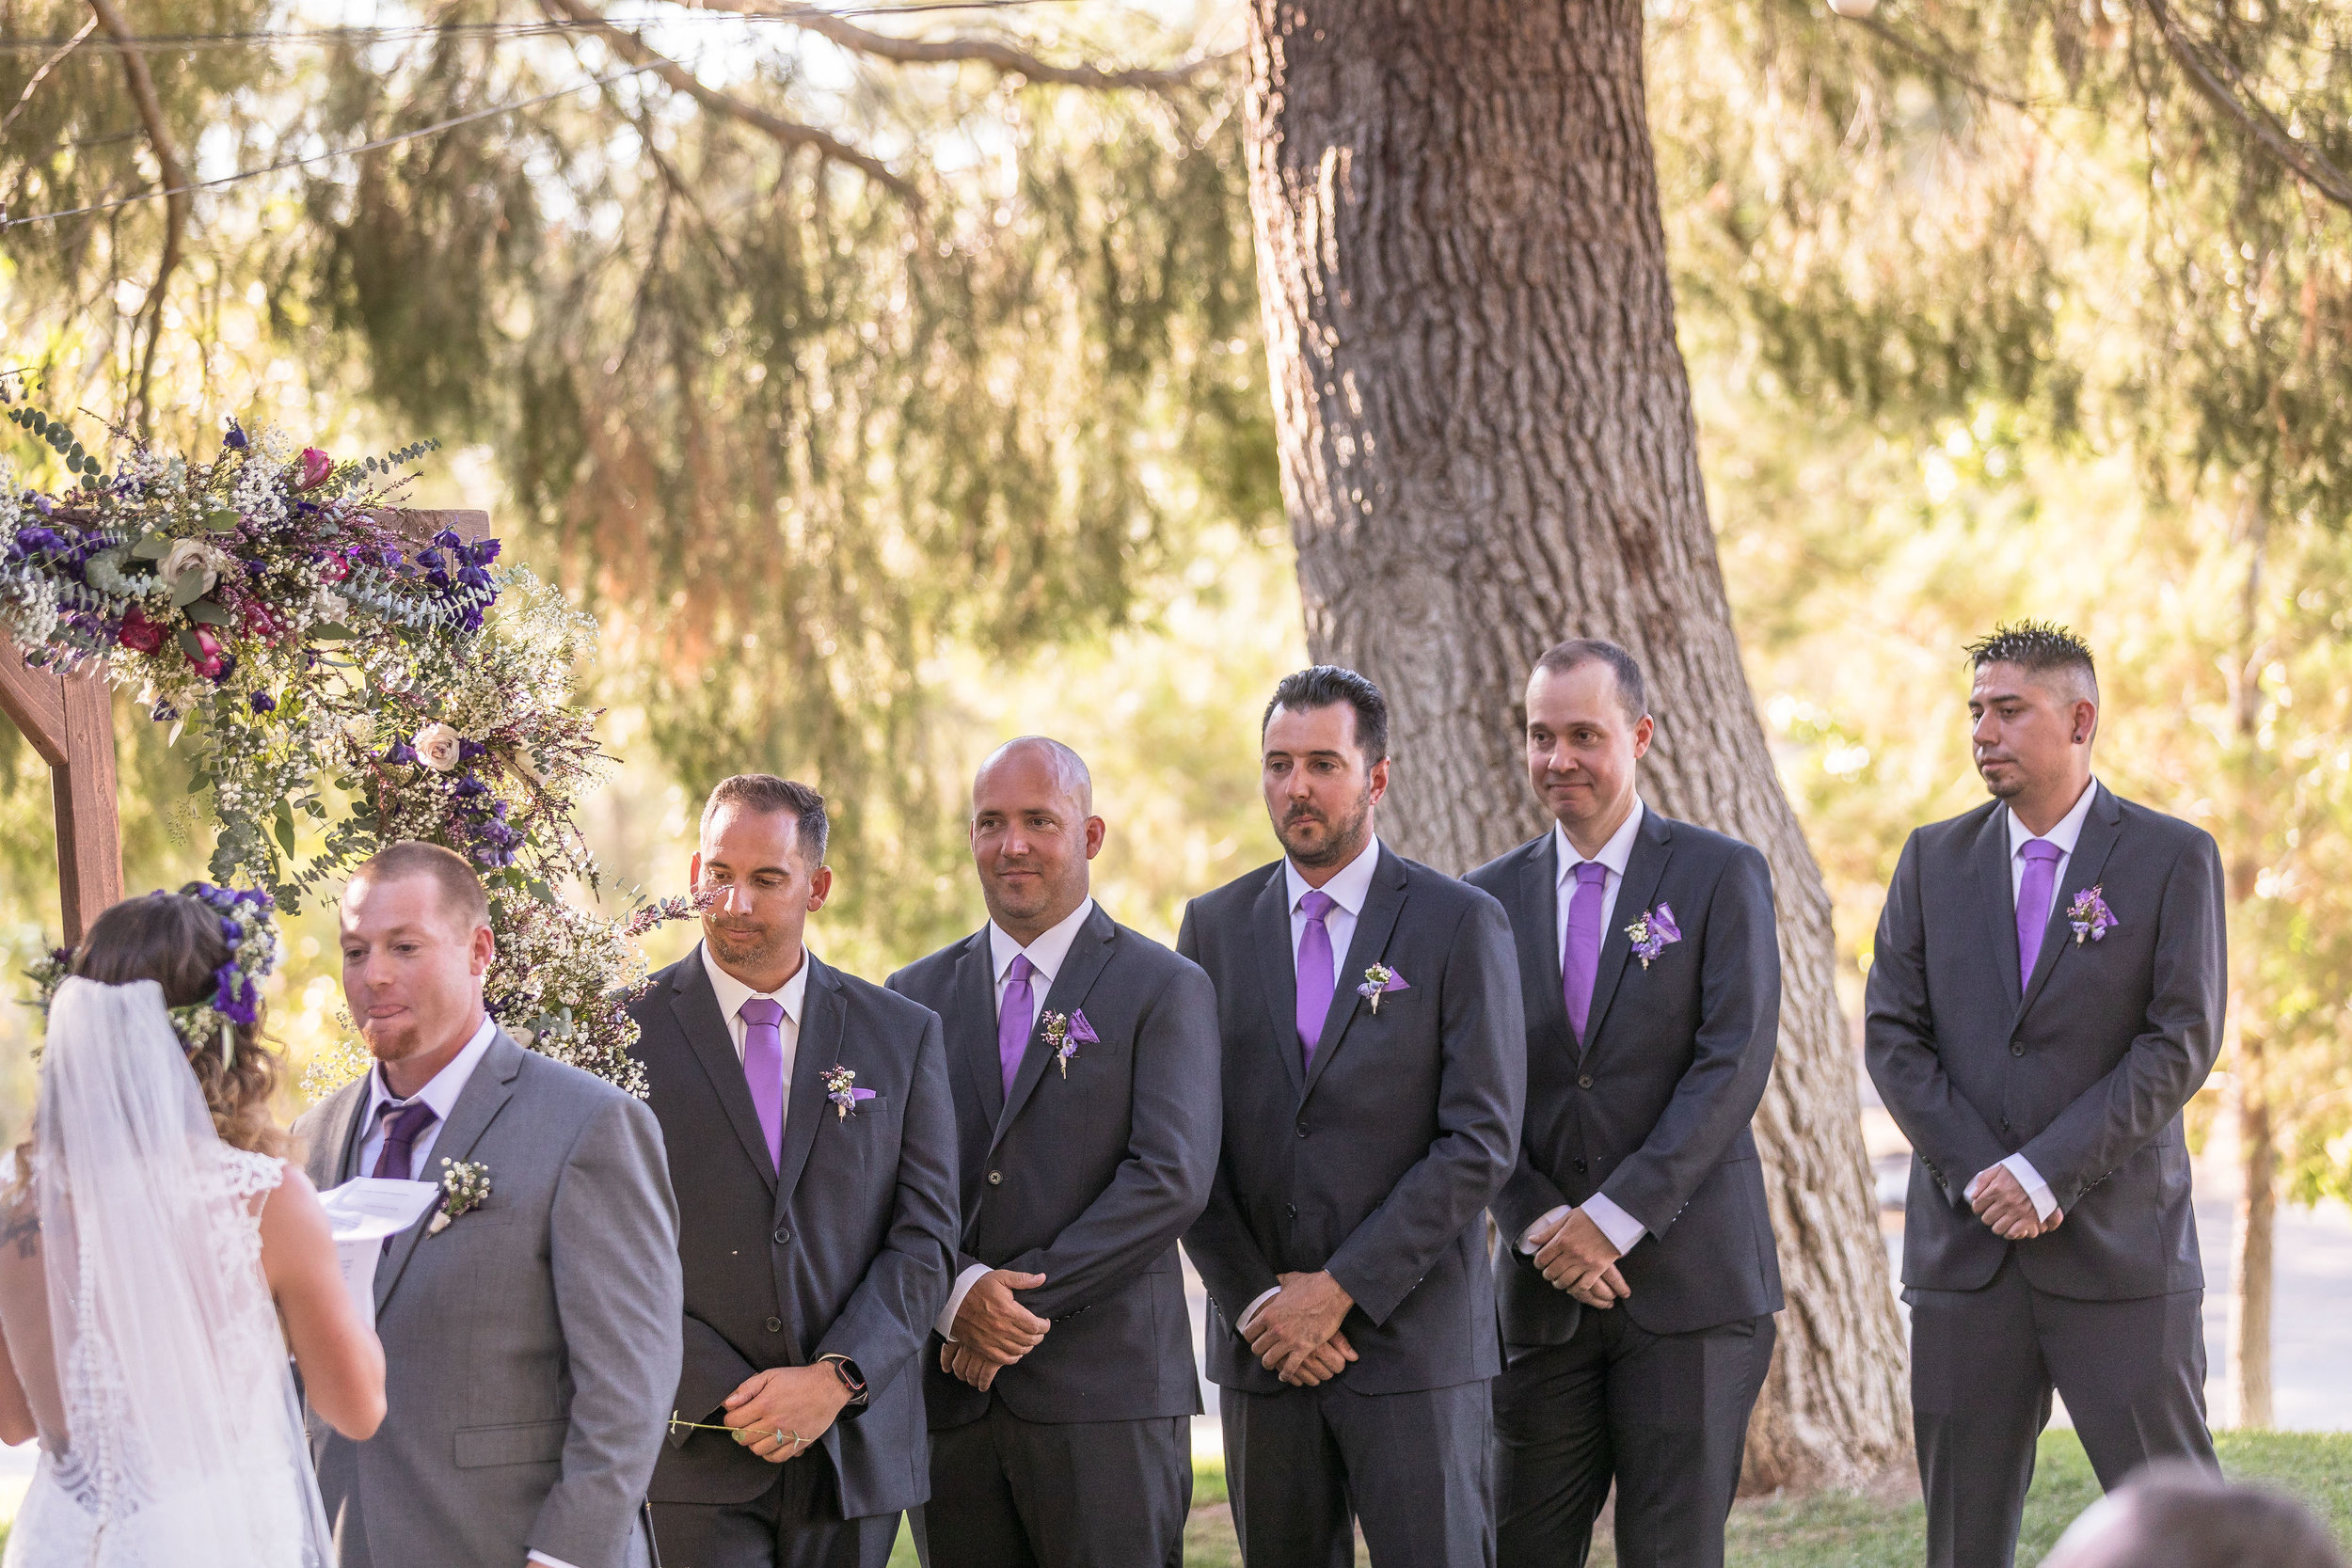 Wedding Ceremony Groomsmen.jpg